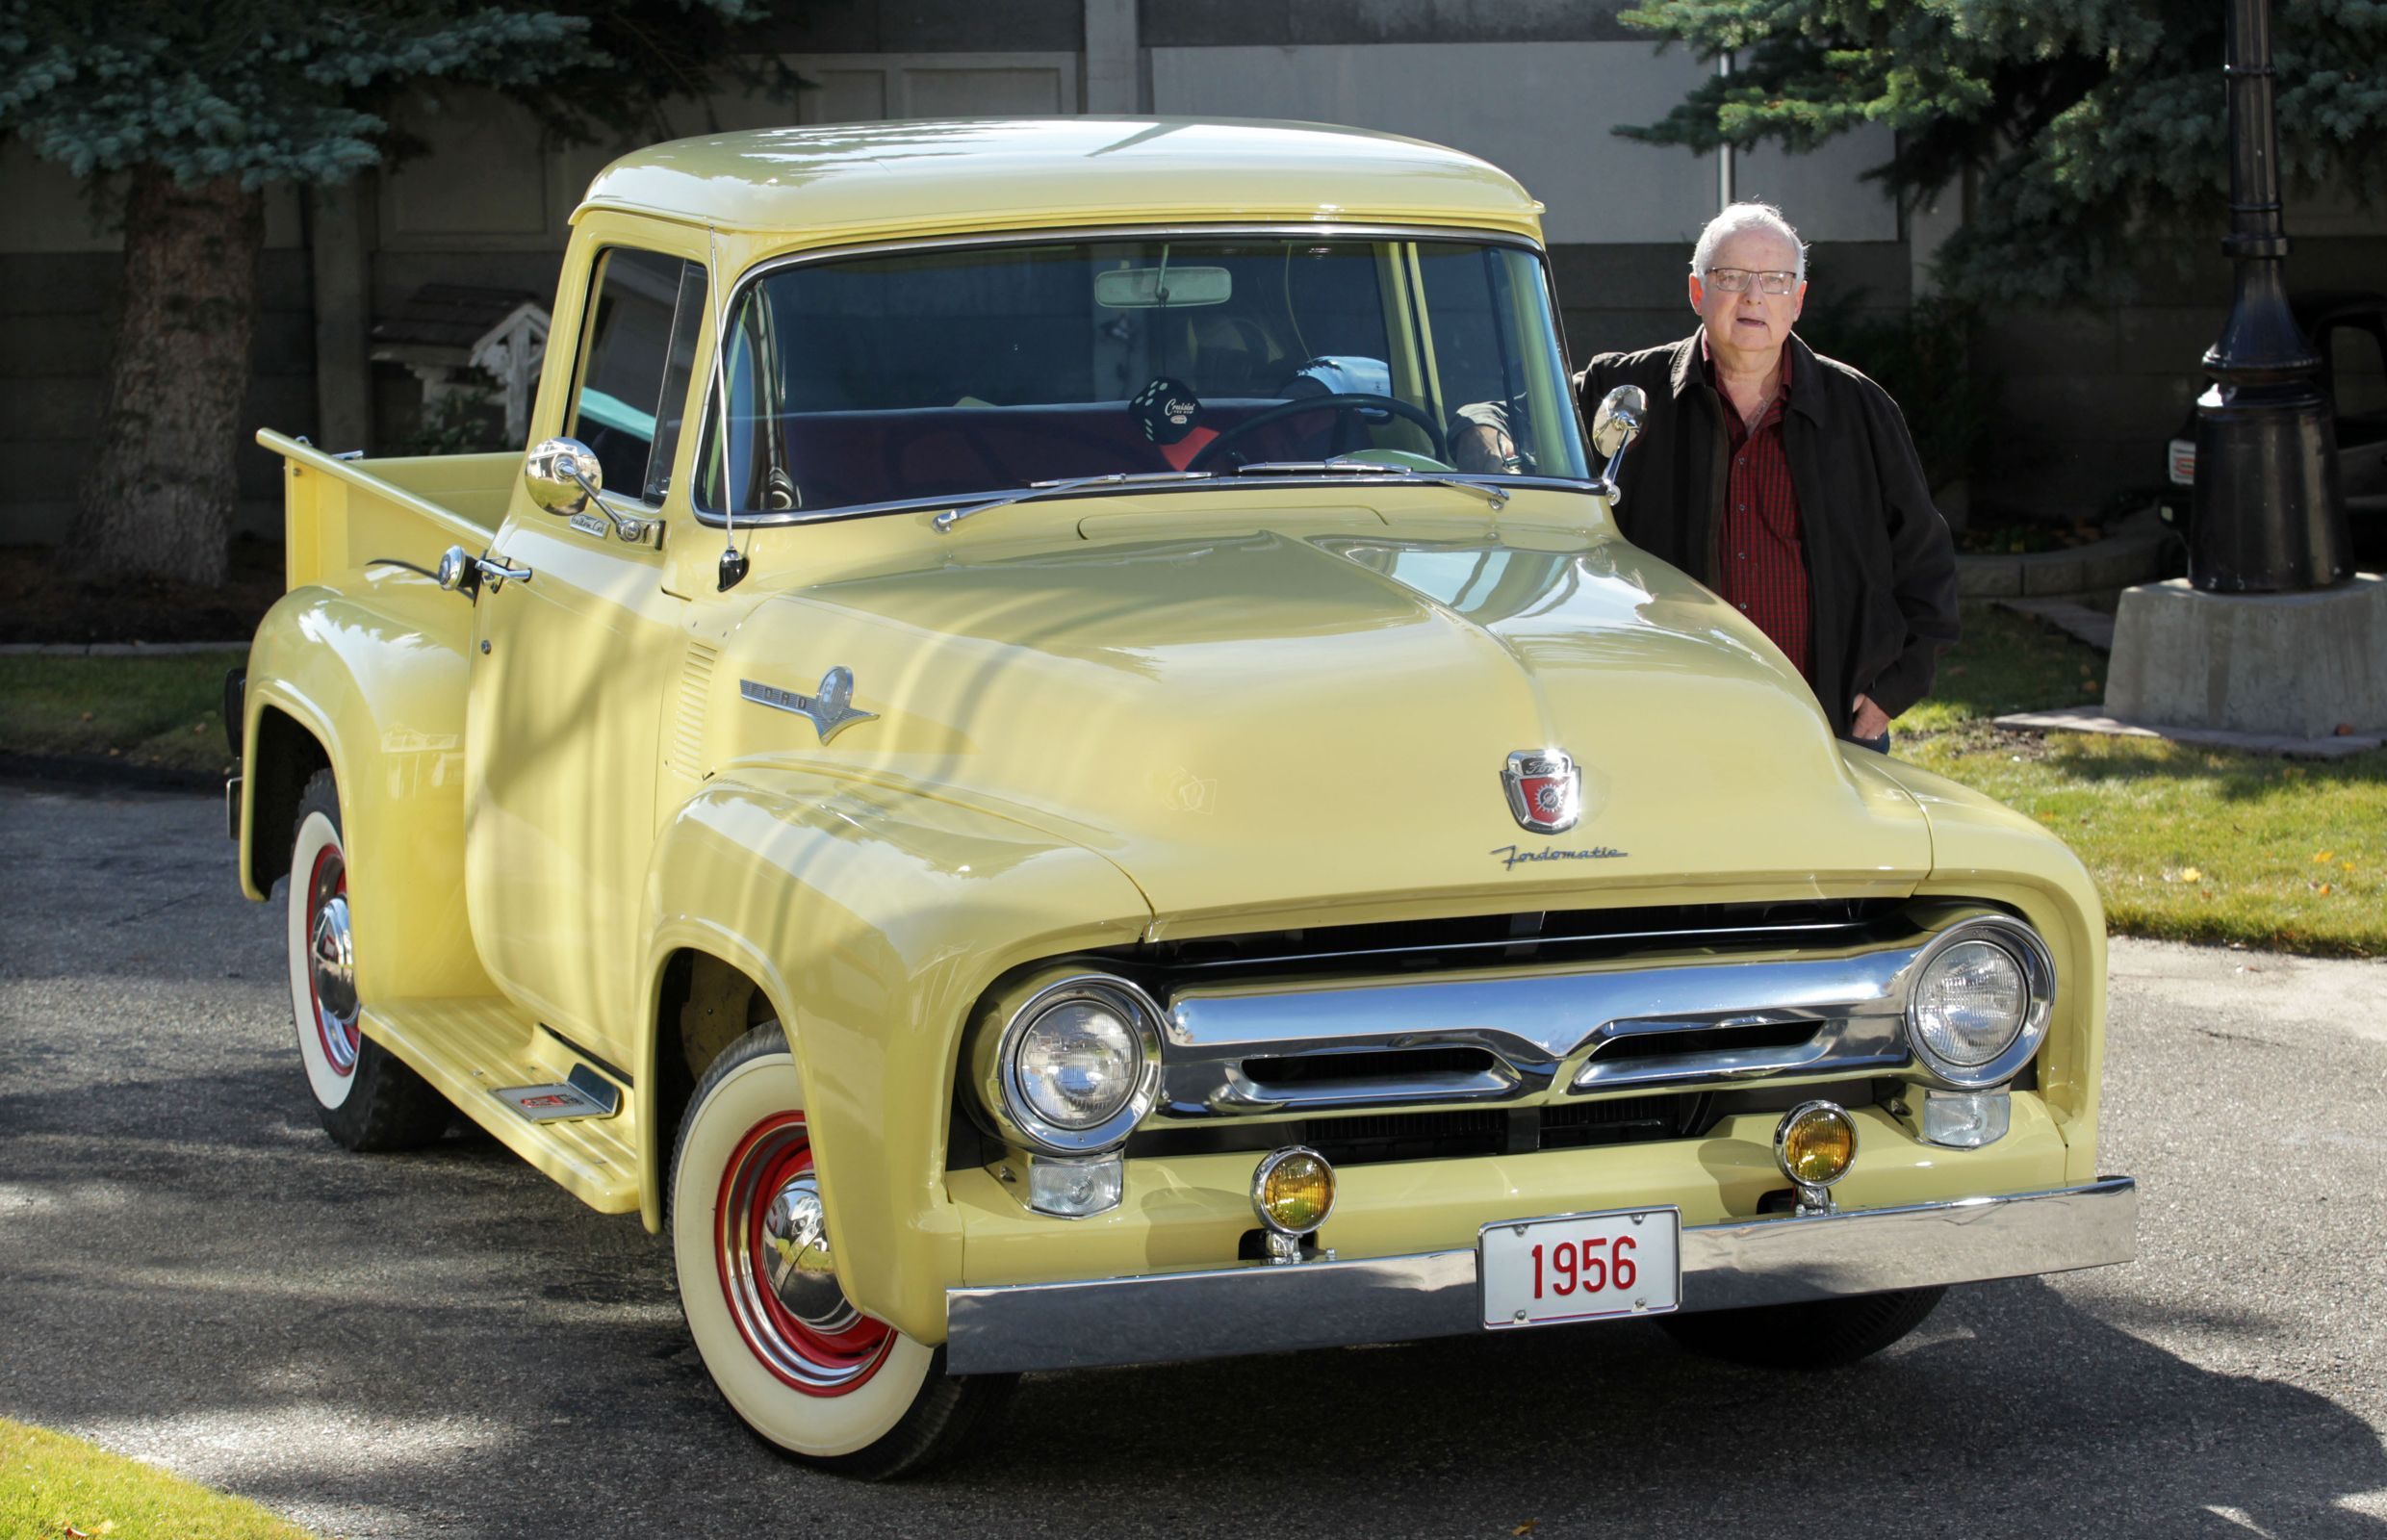 Finding rare 1956 Ford truck a 'miracle' for collector